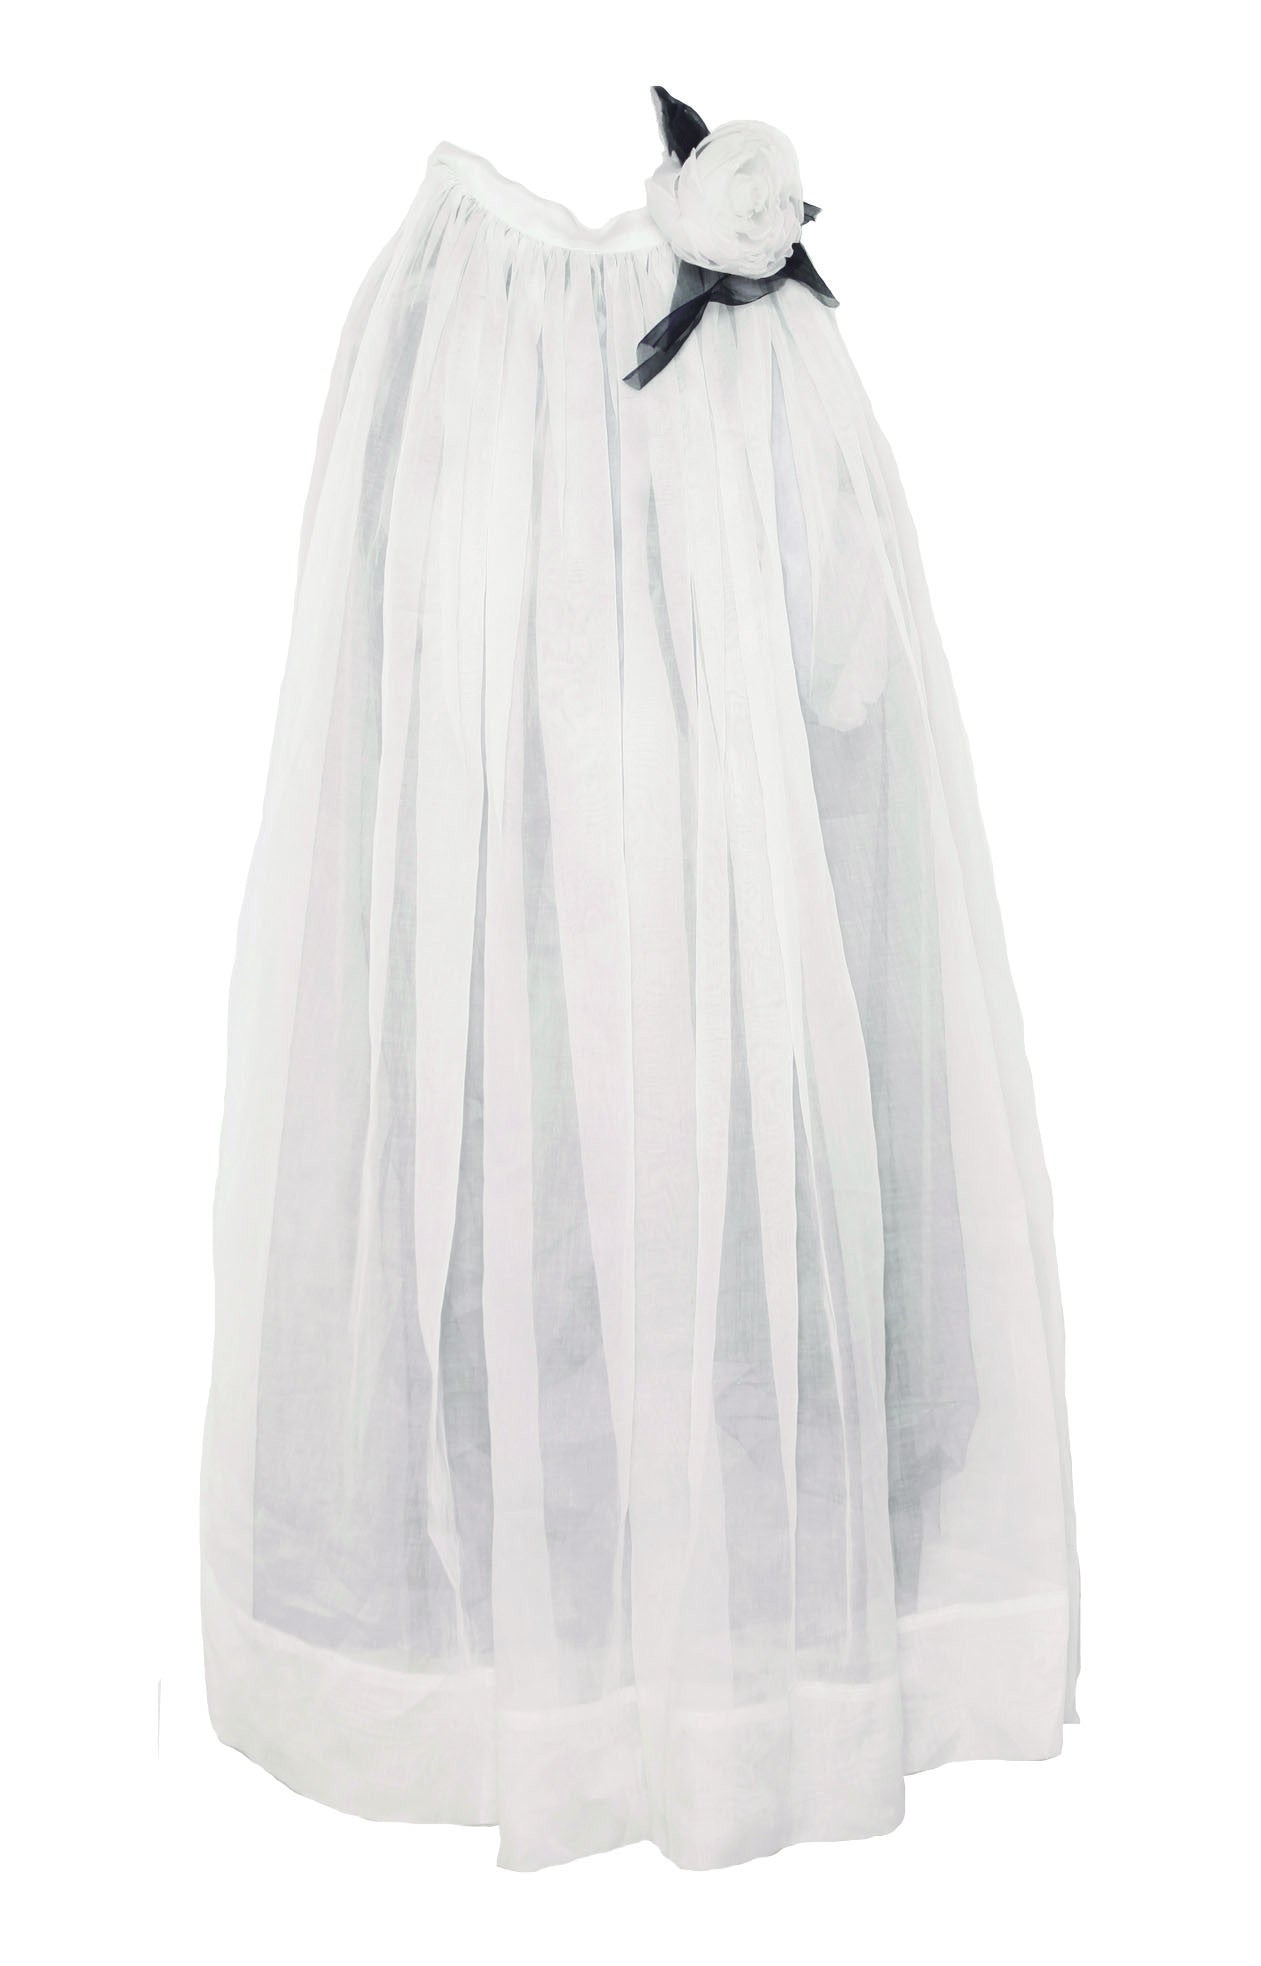 SKIRT LONG ORGANDIE WHITE - Jenny M. London  - 1